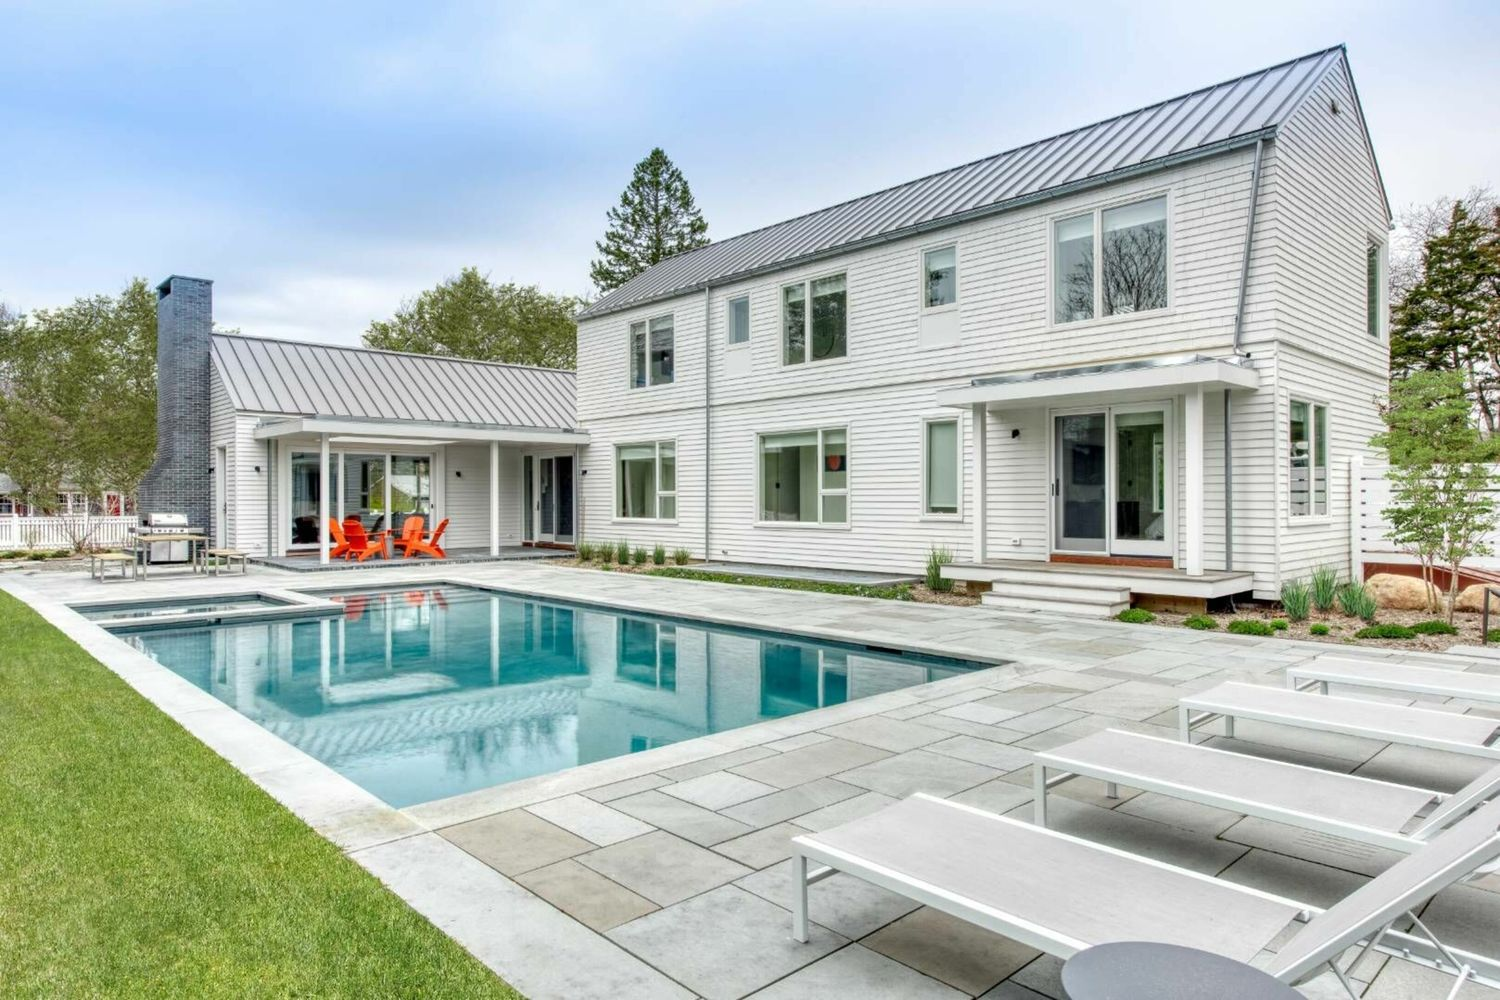 6 Wild Cherry Lane Sag Harbor, NY 11963